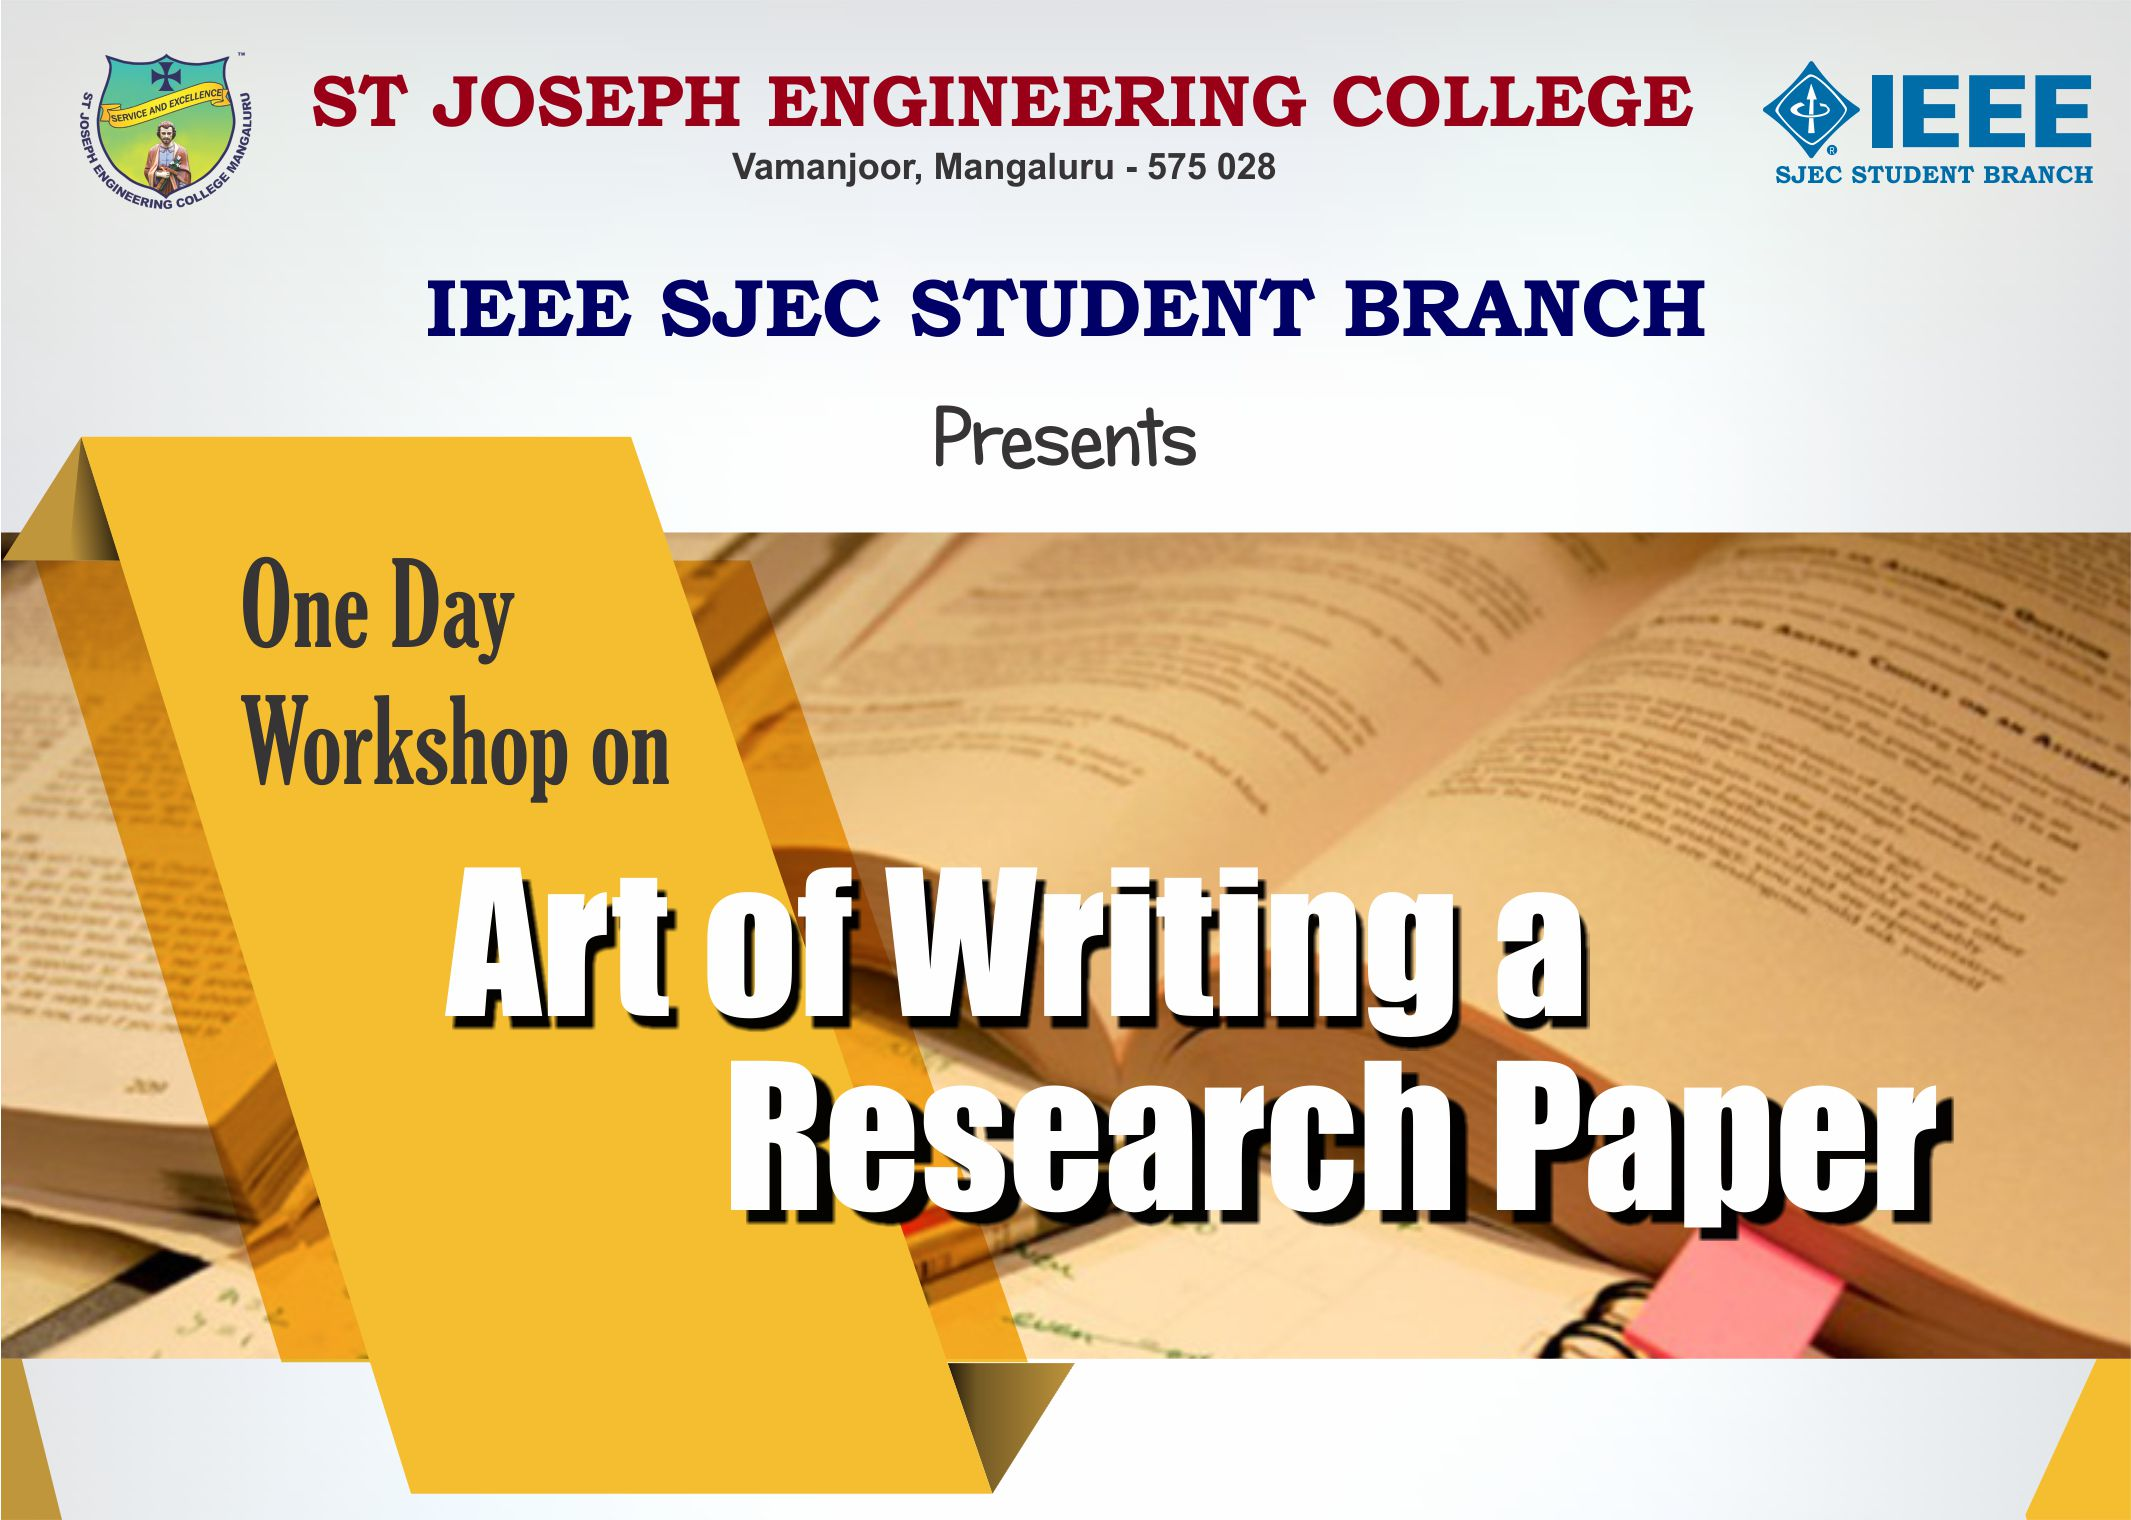 005 Workshop Banner Researchs Writing Fascinating Research Papers Paper Format Example Pdf Software Free Download Ppt Full